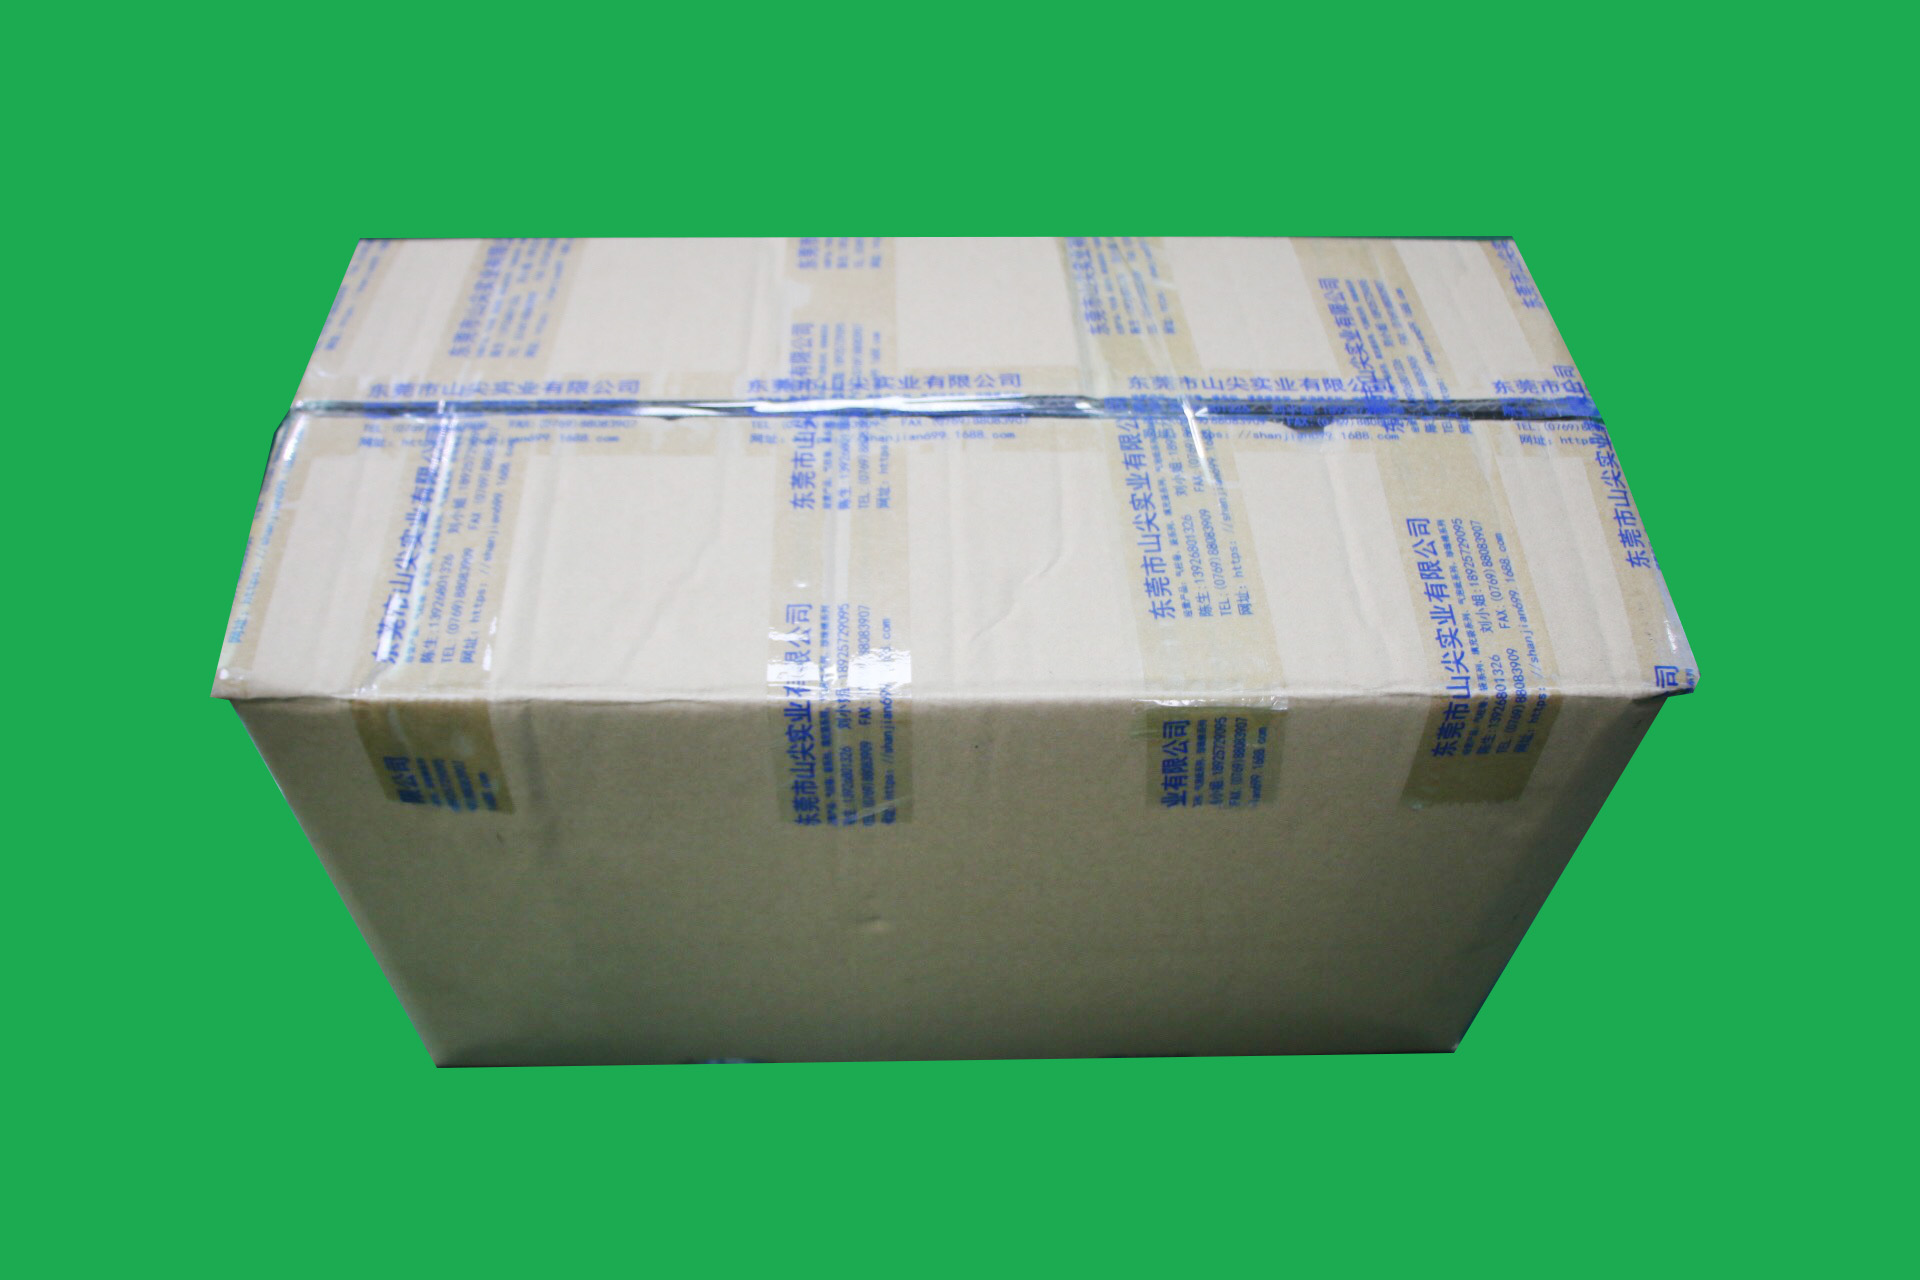 New film cushions ODM company for packing-6